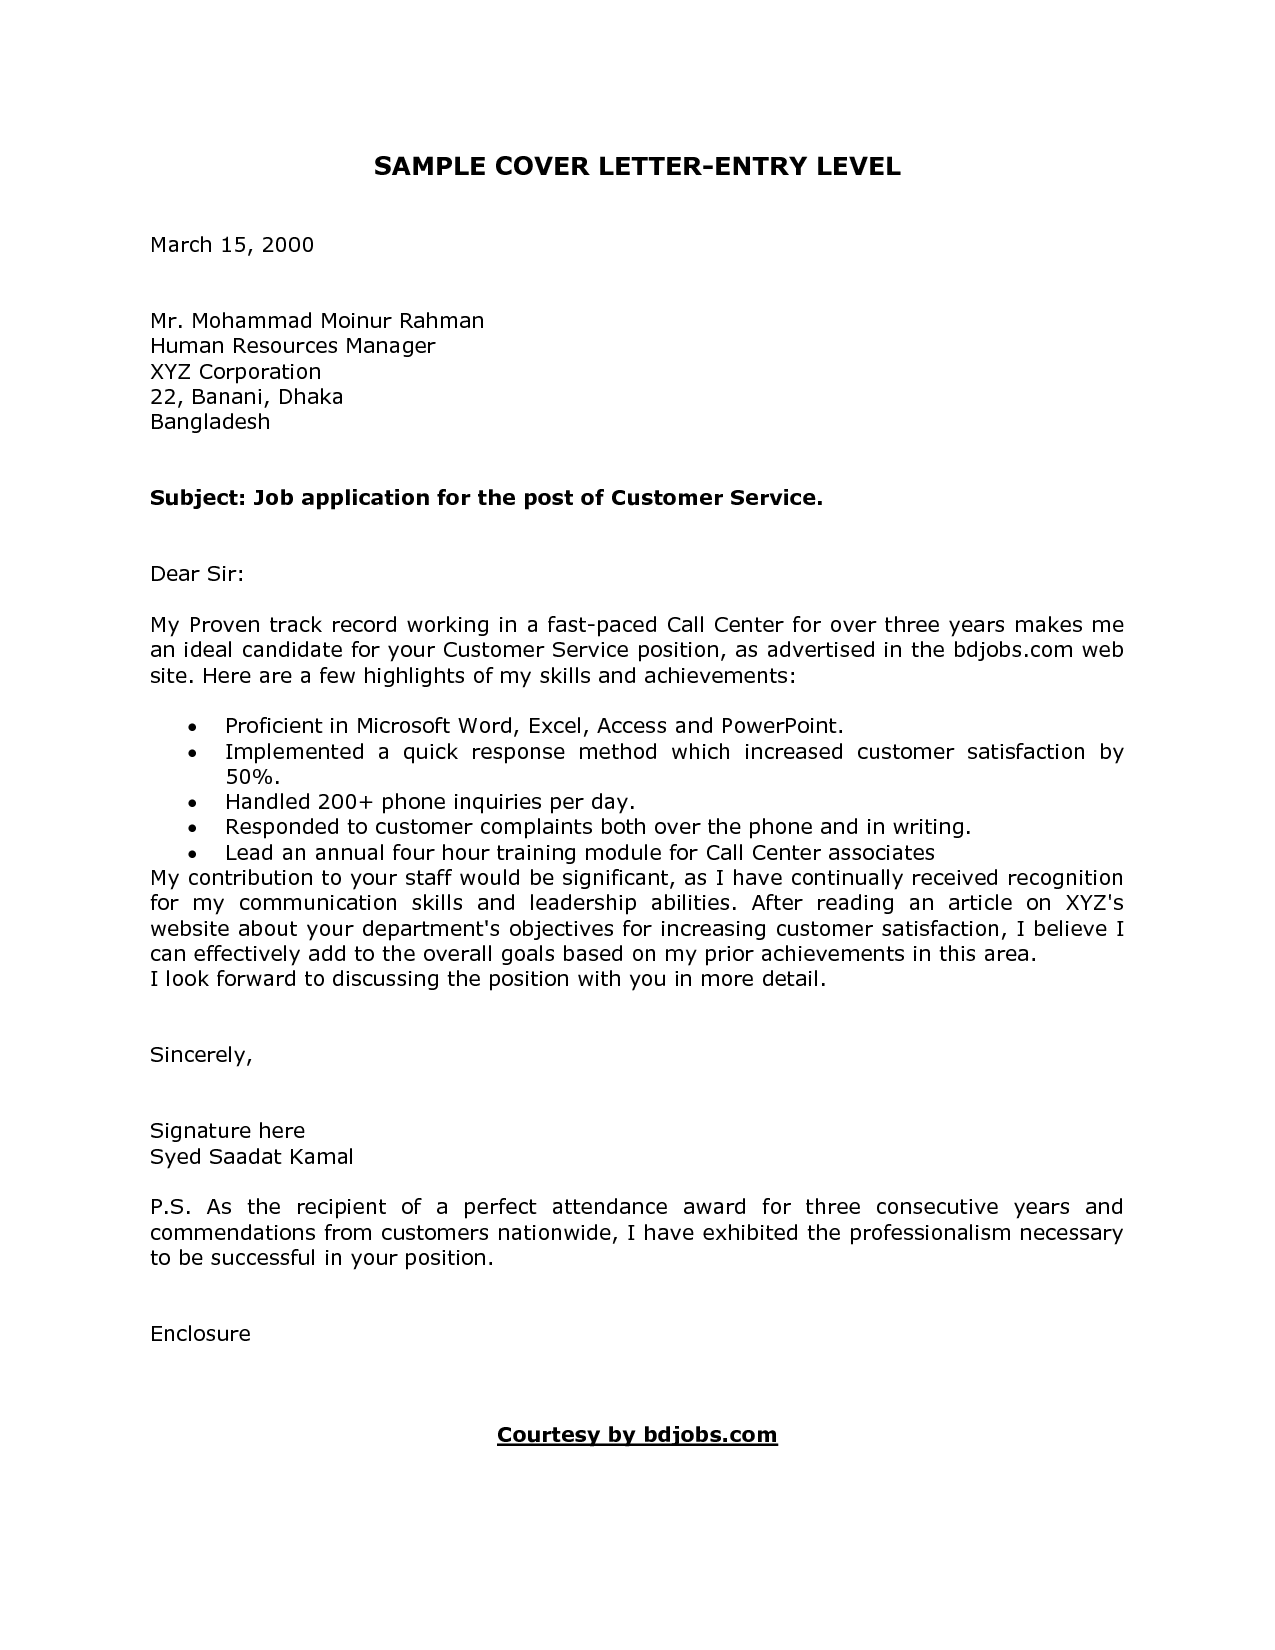 Cover letter format creating executive samples example good for cover letter format creating executive samples example good for job application the best madrichimfo Gallery